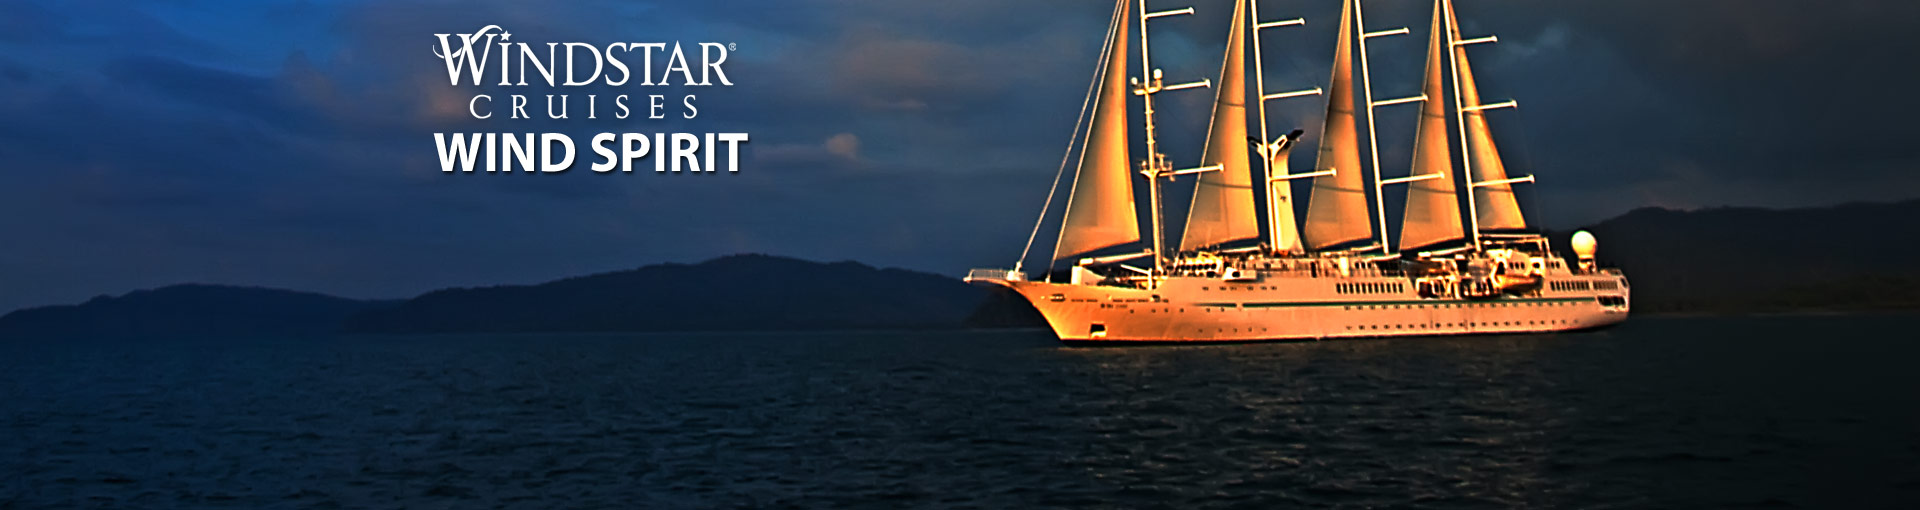 Windstar Cruises Wind Spirit Cruise Ship